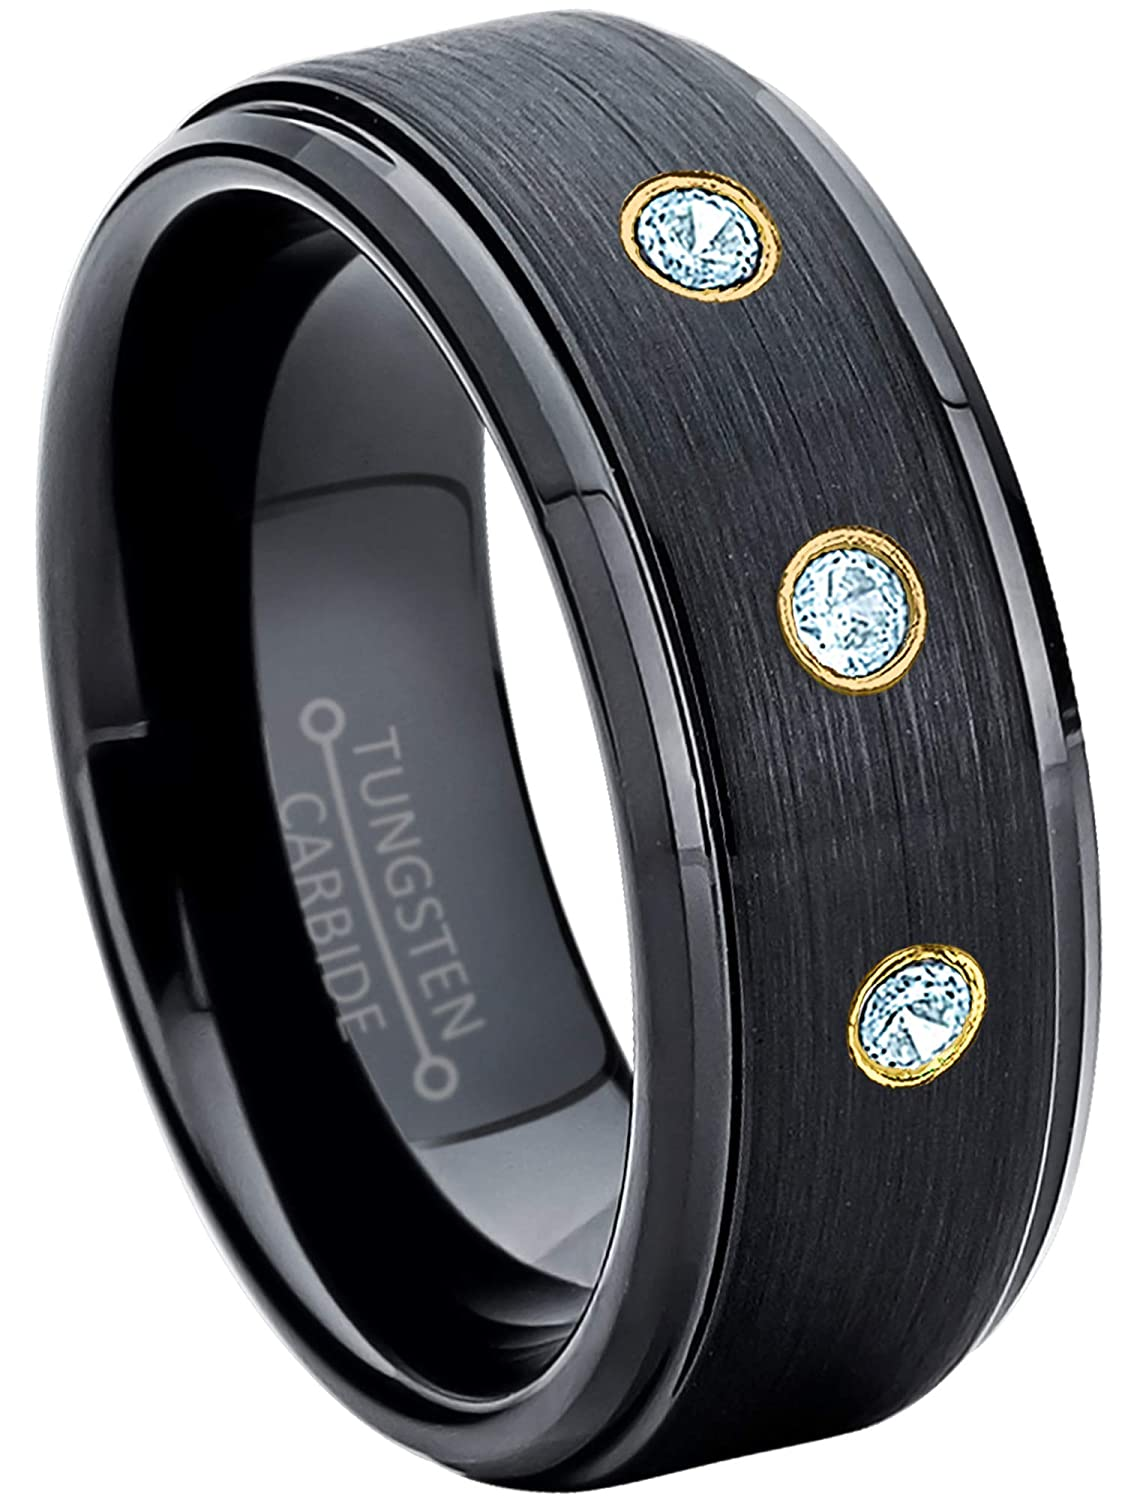 November Birthstone Ring Jewelry Avalanche 8MM Brushed Black IP Stepped Edge Tungsten Carbide Wedding Band 0.21ctw Topaz 3-Stone Tungsten Ring